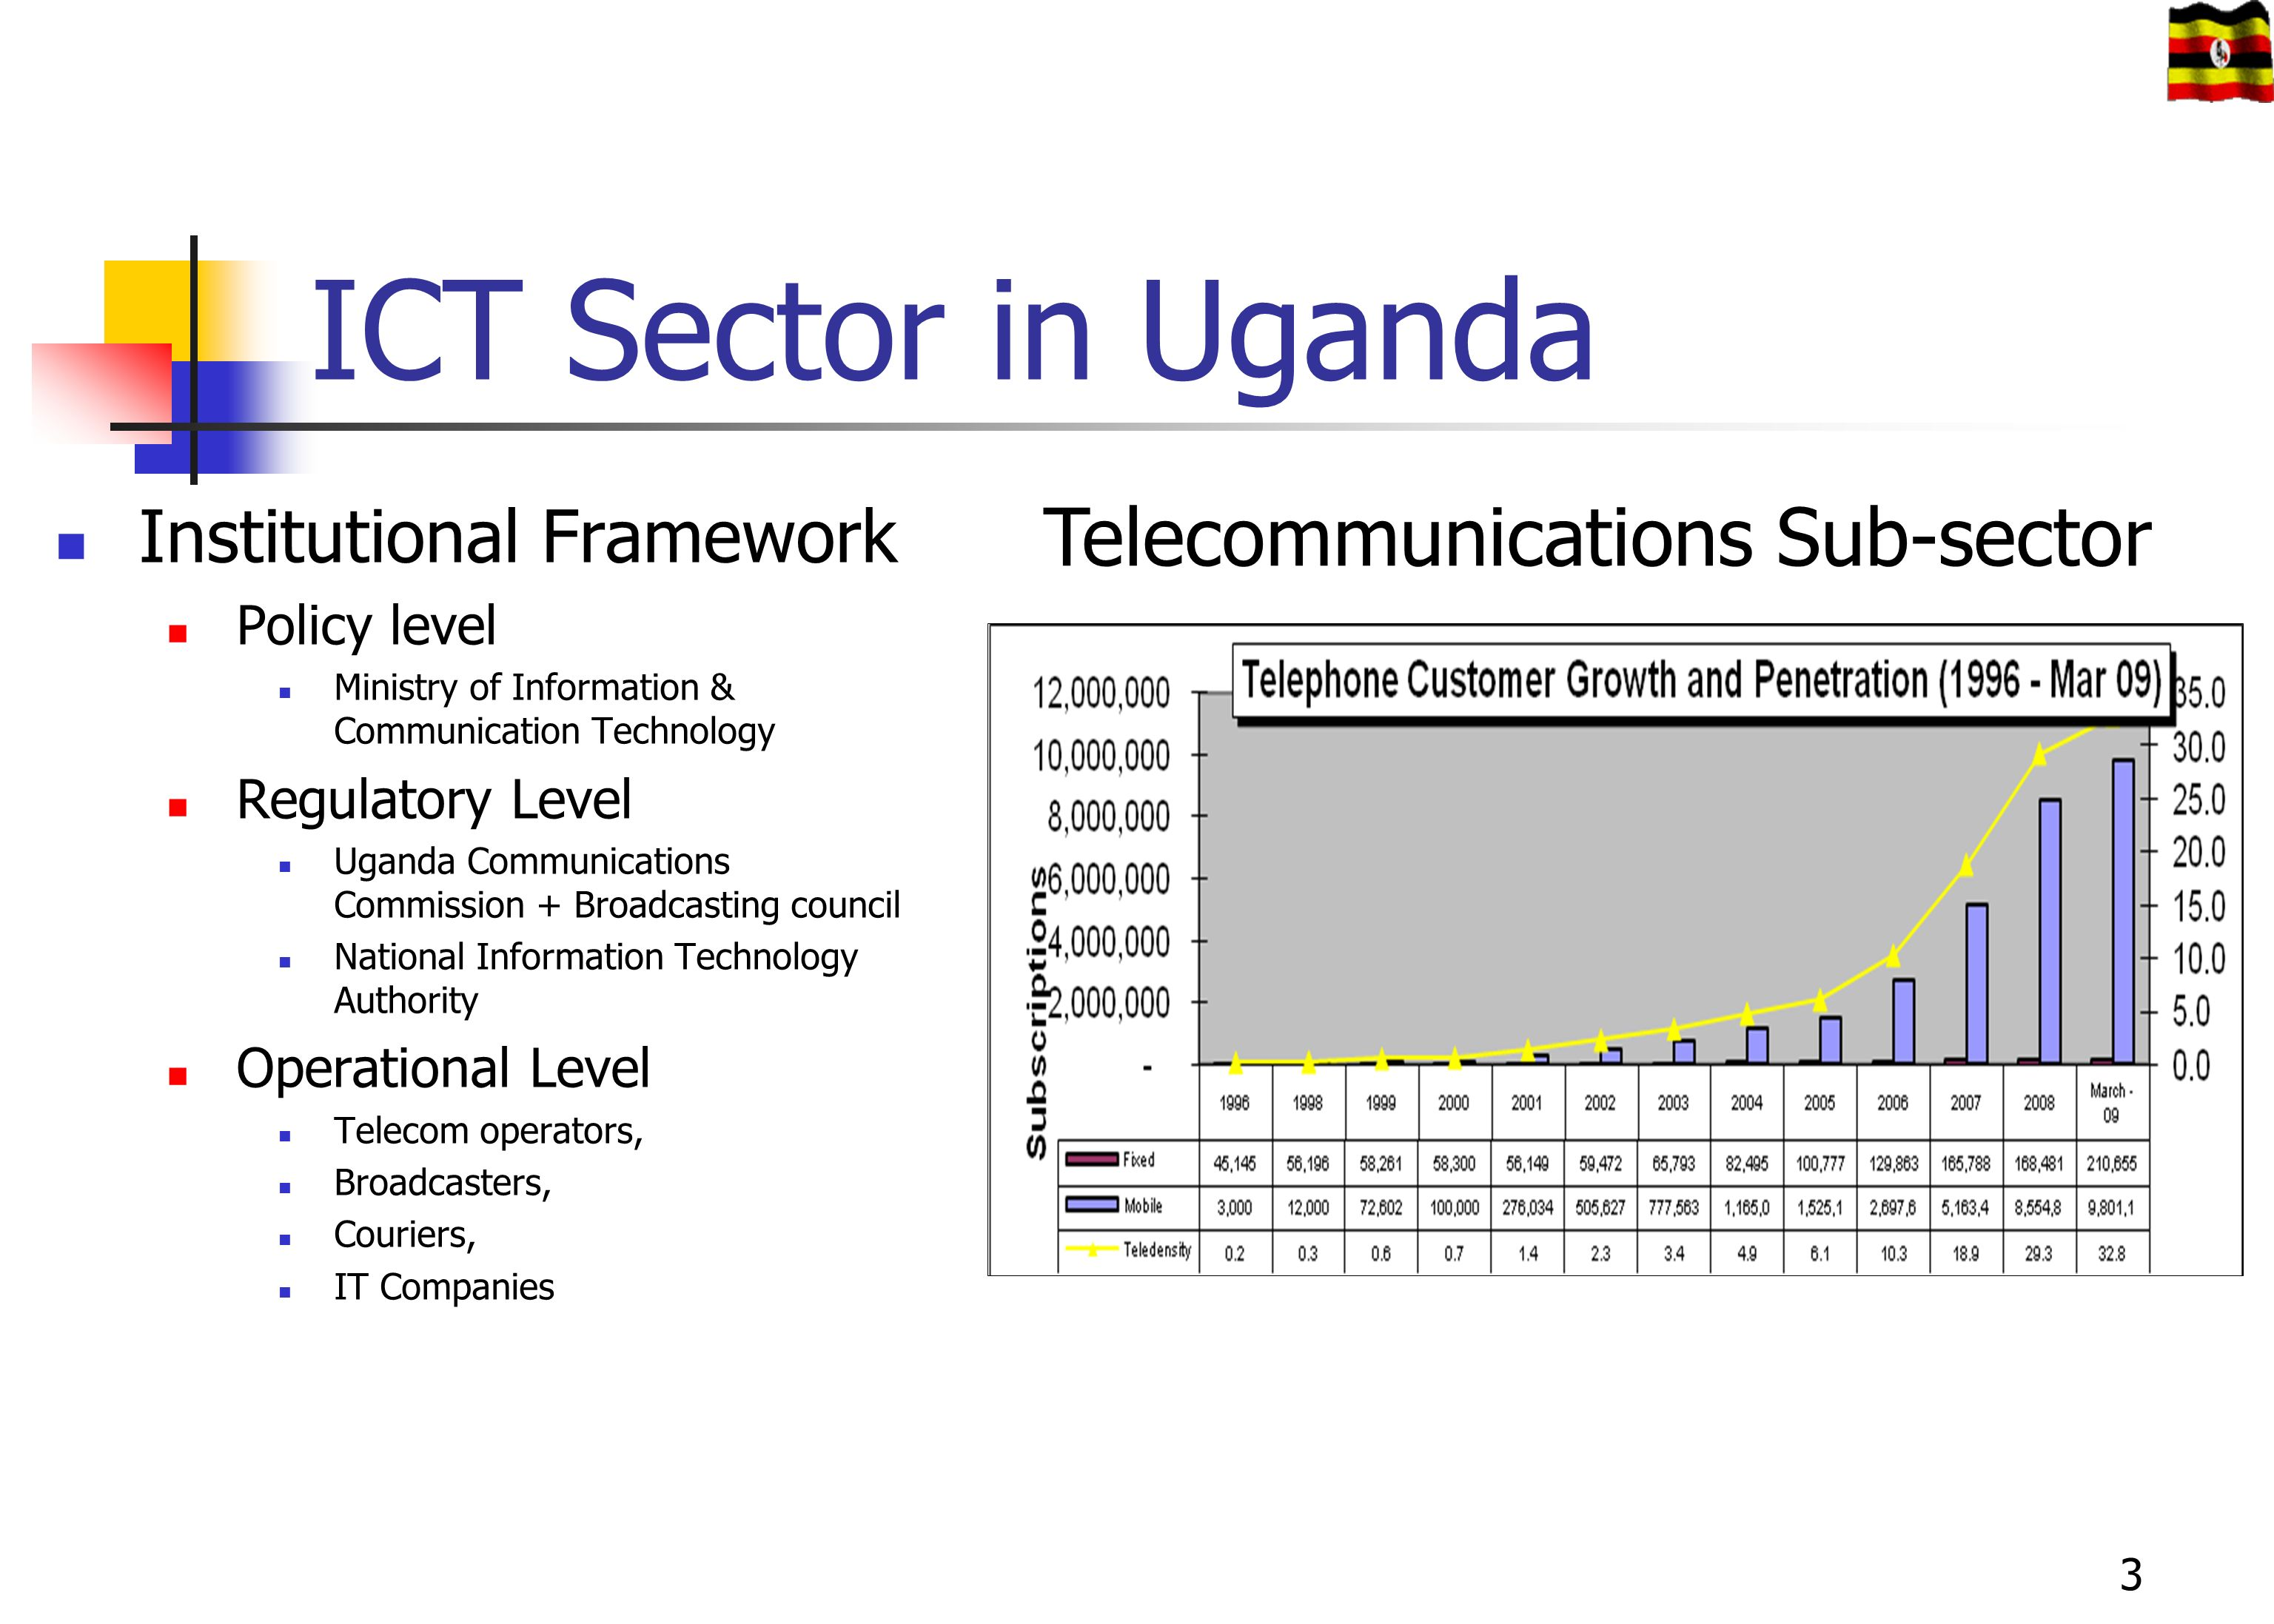 ICT Sector in Uganda Institutional Framework Policy level Ministry of Information & Communication Technology Regulatory Level Uganda Communications Co